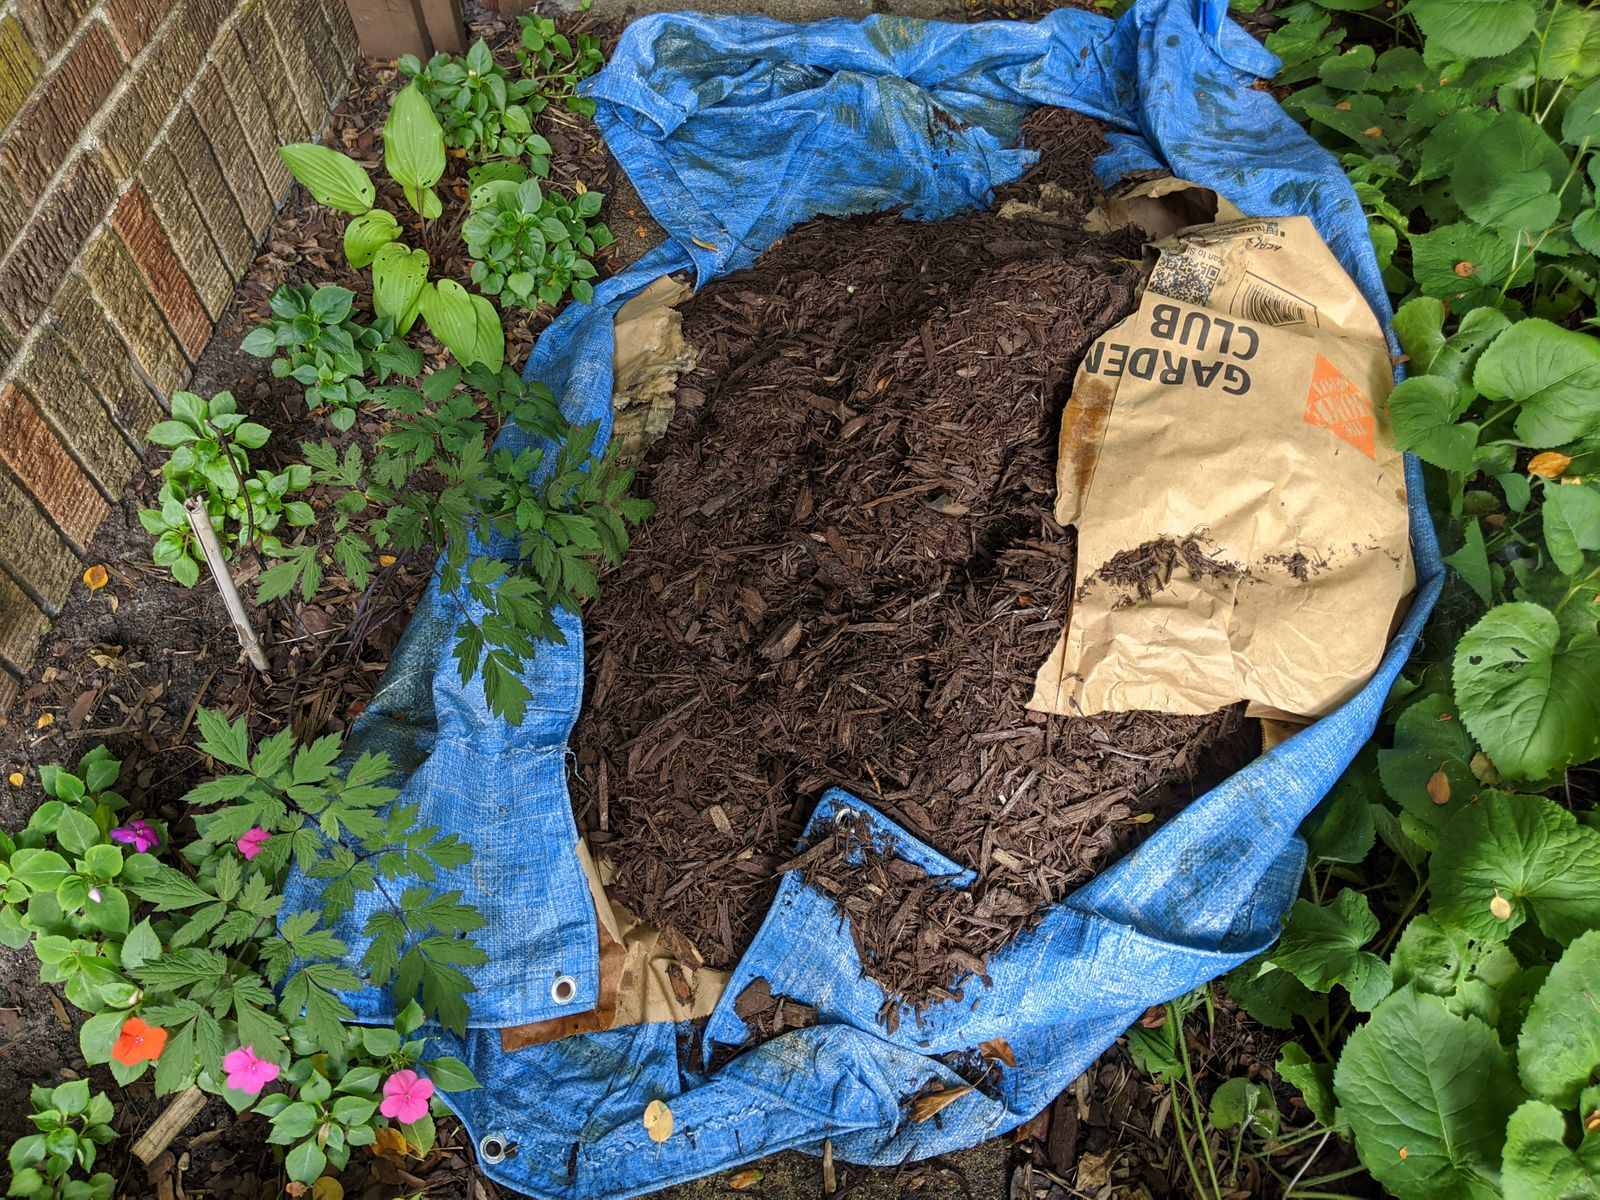 Gone from our house at least. Pile of mulch in my in-laws' backyard two weeks later.